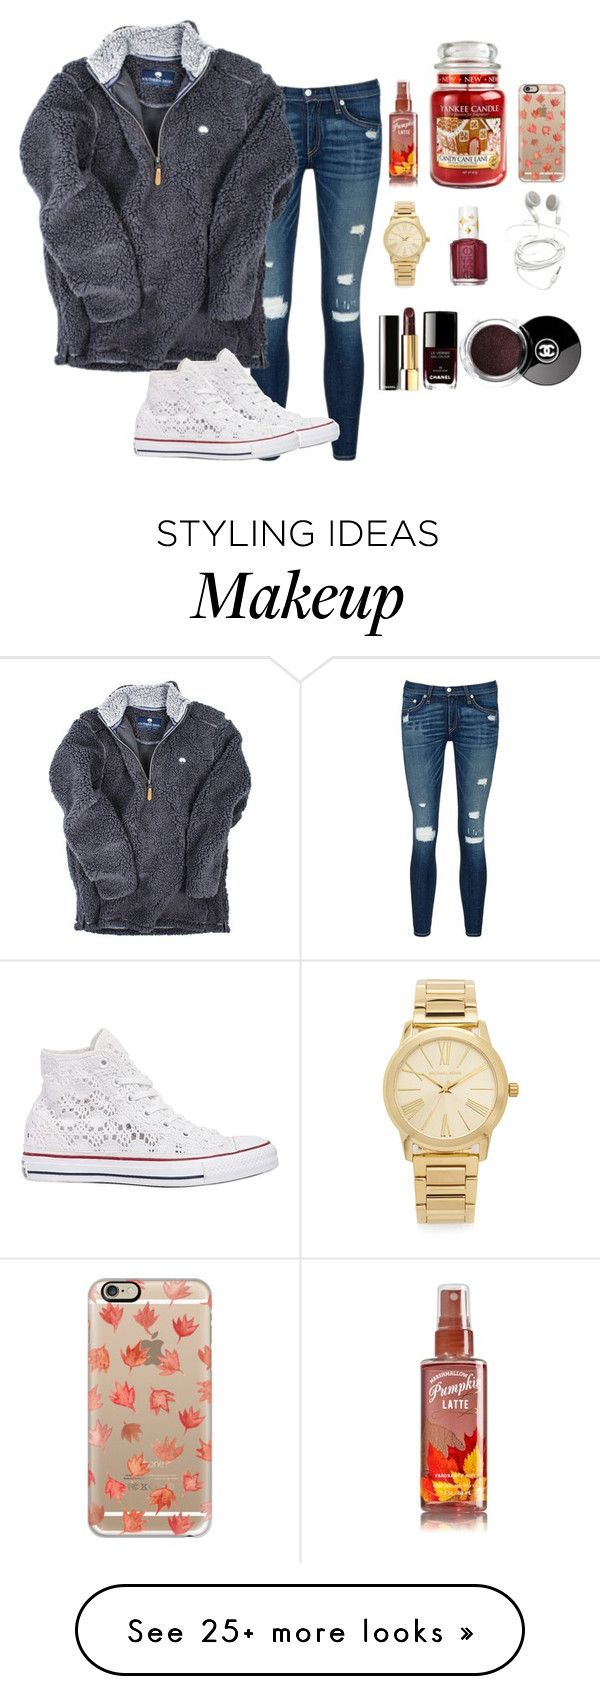 """Read d ..."" by fashionworldoflove on Polyvore featuring rag & bone/JEAN, Converse, Casetify, Yankee Candle, Michael Kors, Essie, Chanel, women's clothing, women and female"